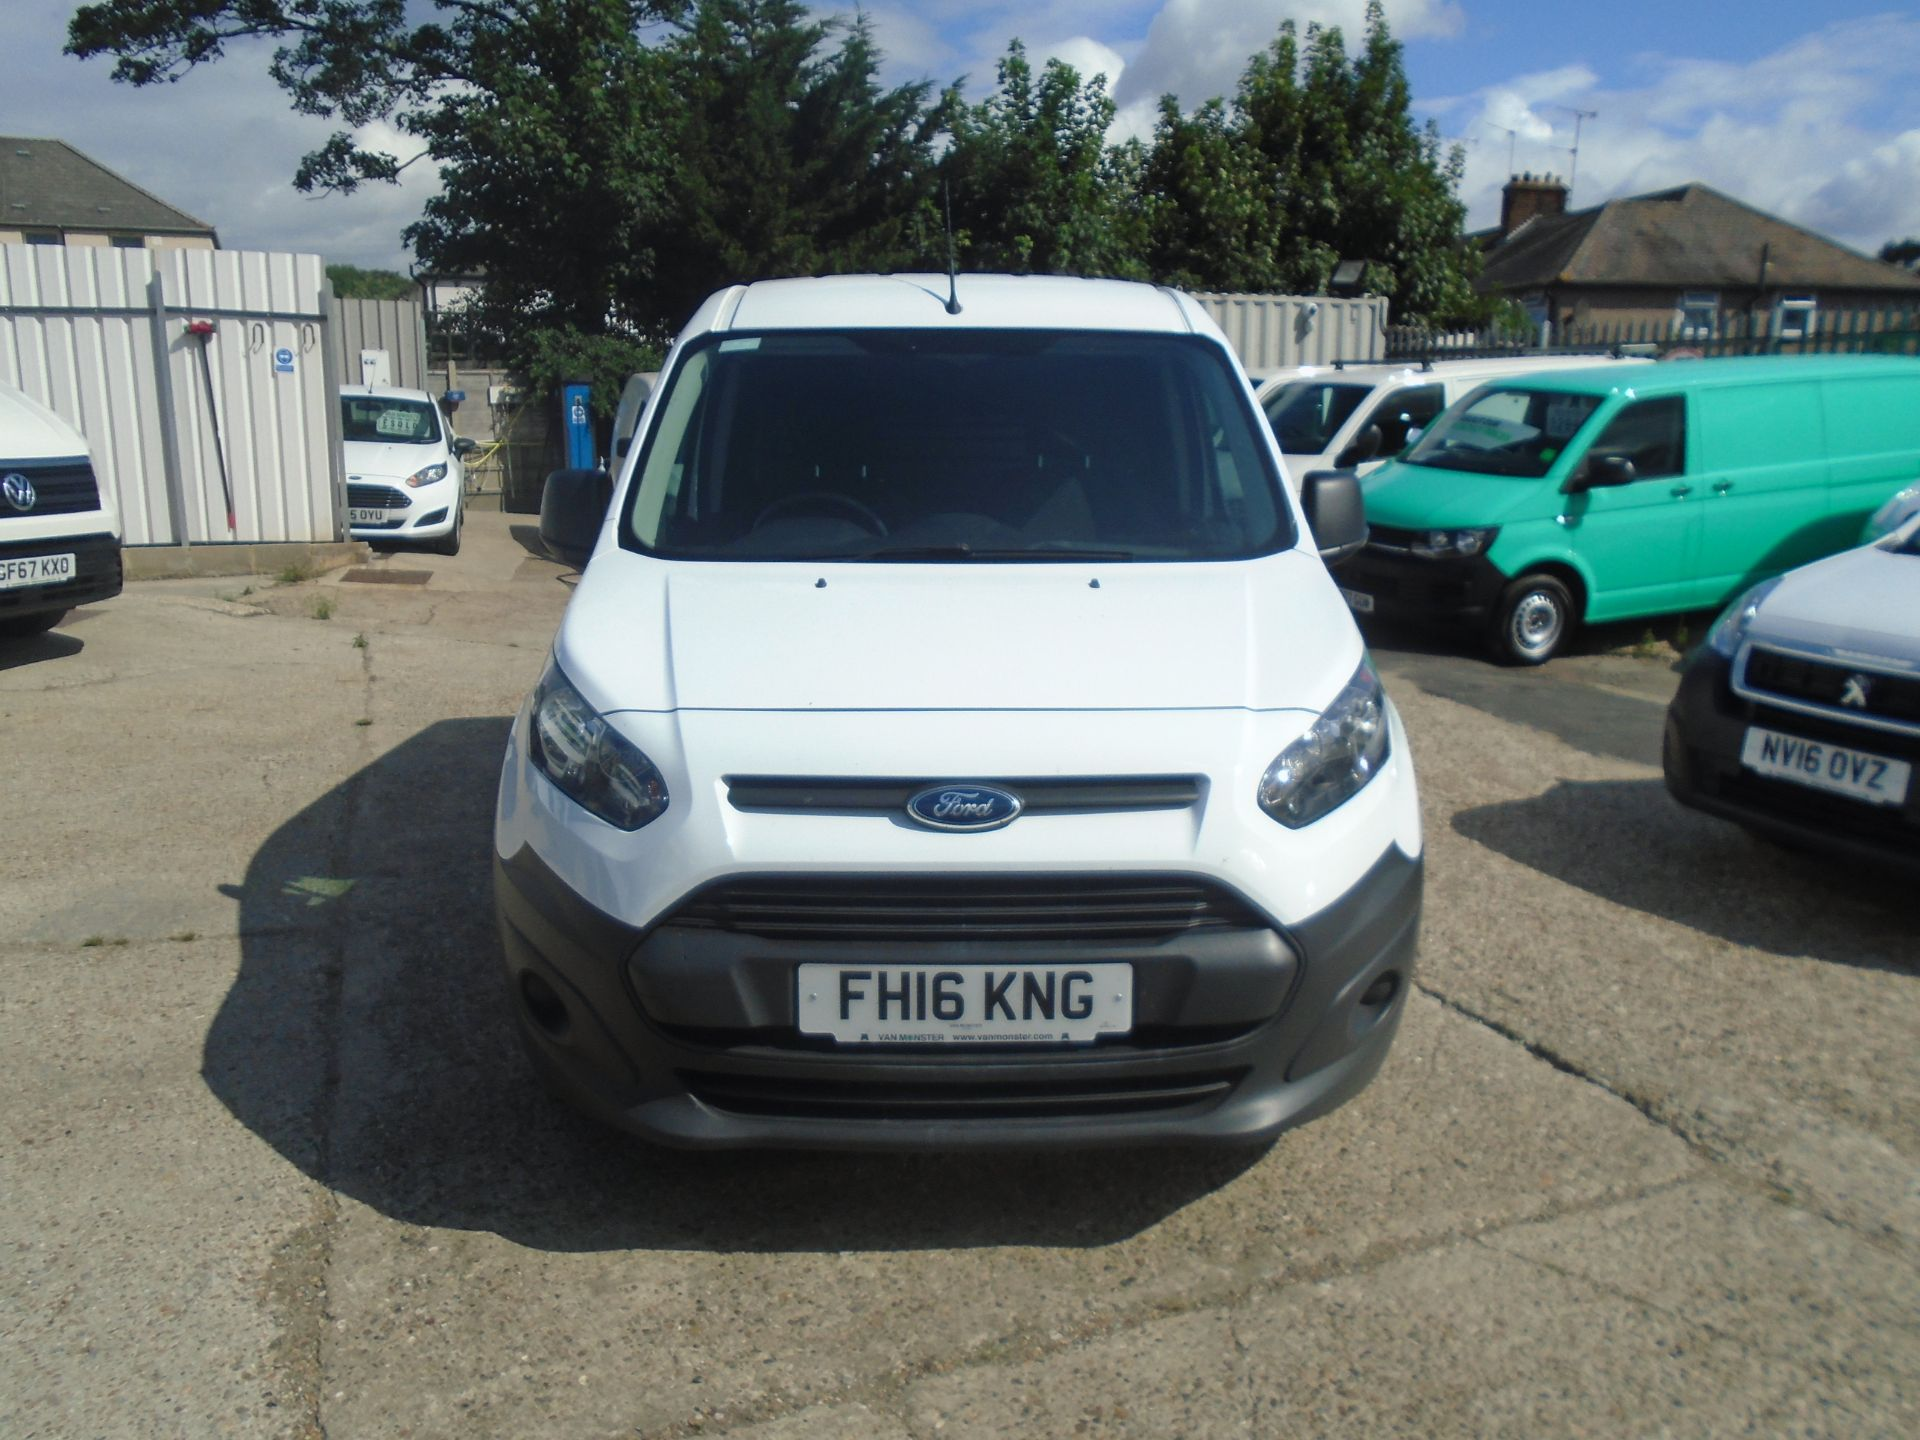 2016 Ford Transit Connect 1.5 Tdci 100Ps Econetic Van -LIMITED TO 70MPH (FH16KNG) Image 2